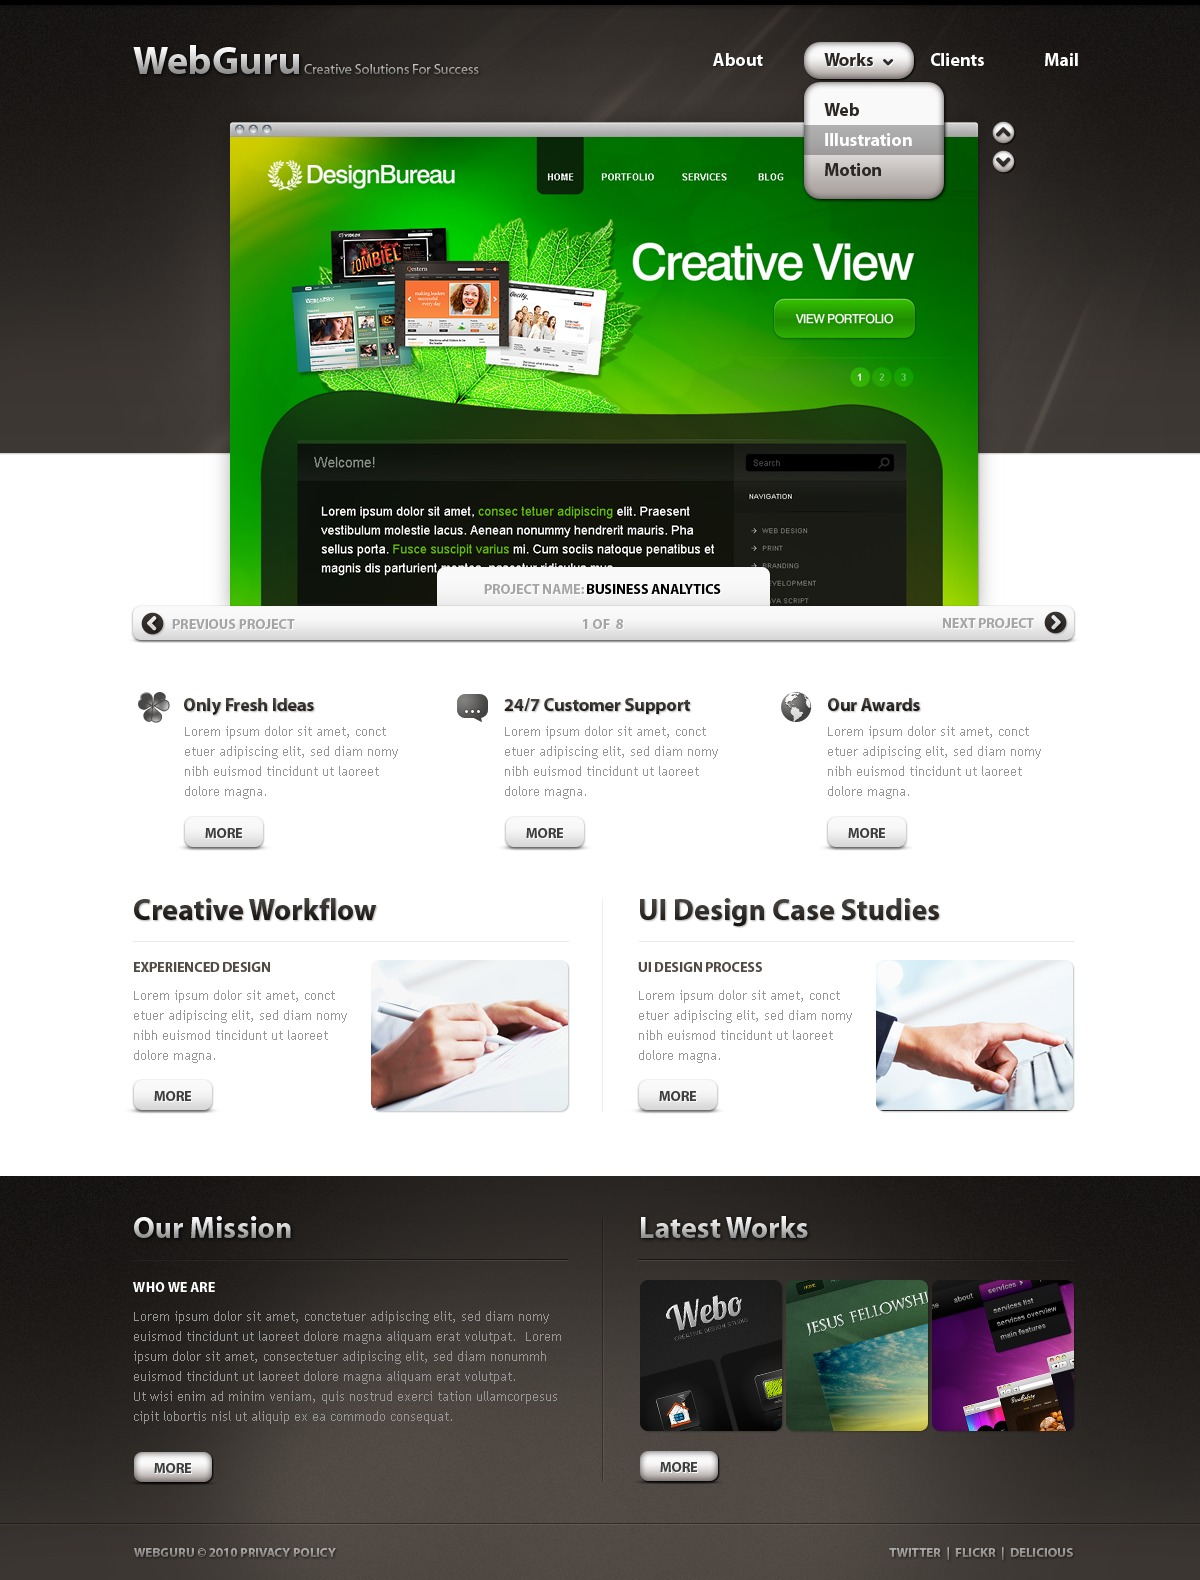 The Web Guru Design Studio PSD Design 54425, one of the best PSD templates of its kind (web design, wide, jquery), also known as web guru design studio PSD template, creative art gallery PSD template, artists PSD template, painting PSD template, painters PSD template, web development PSD template, webmasters PSD template, designers PSD template, internet PSD template, www PSD template, sites PSD template, web design PSD template, webpage PSD template, personal portfolio and related with web guru design studio, creative art gallery, artists, painting, painters, web development, webmasters, designers, internet, www, sites, web design, webpage, personal portfolio, etc.